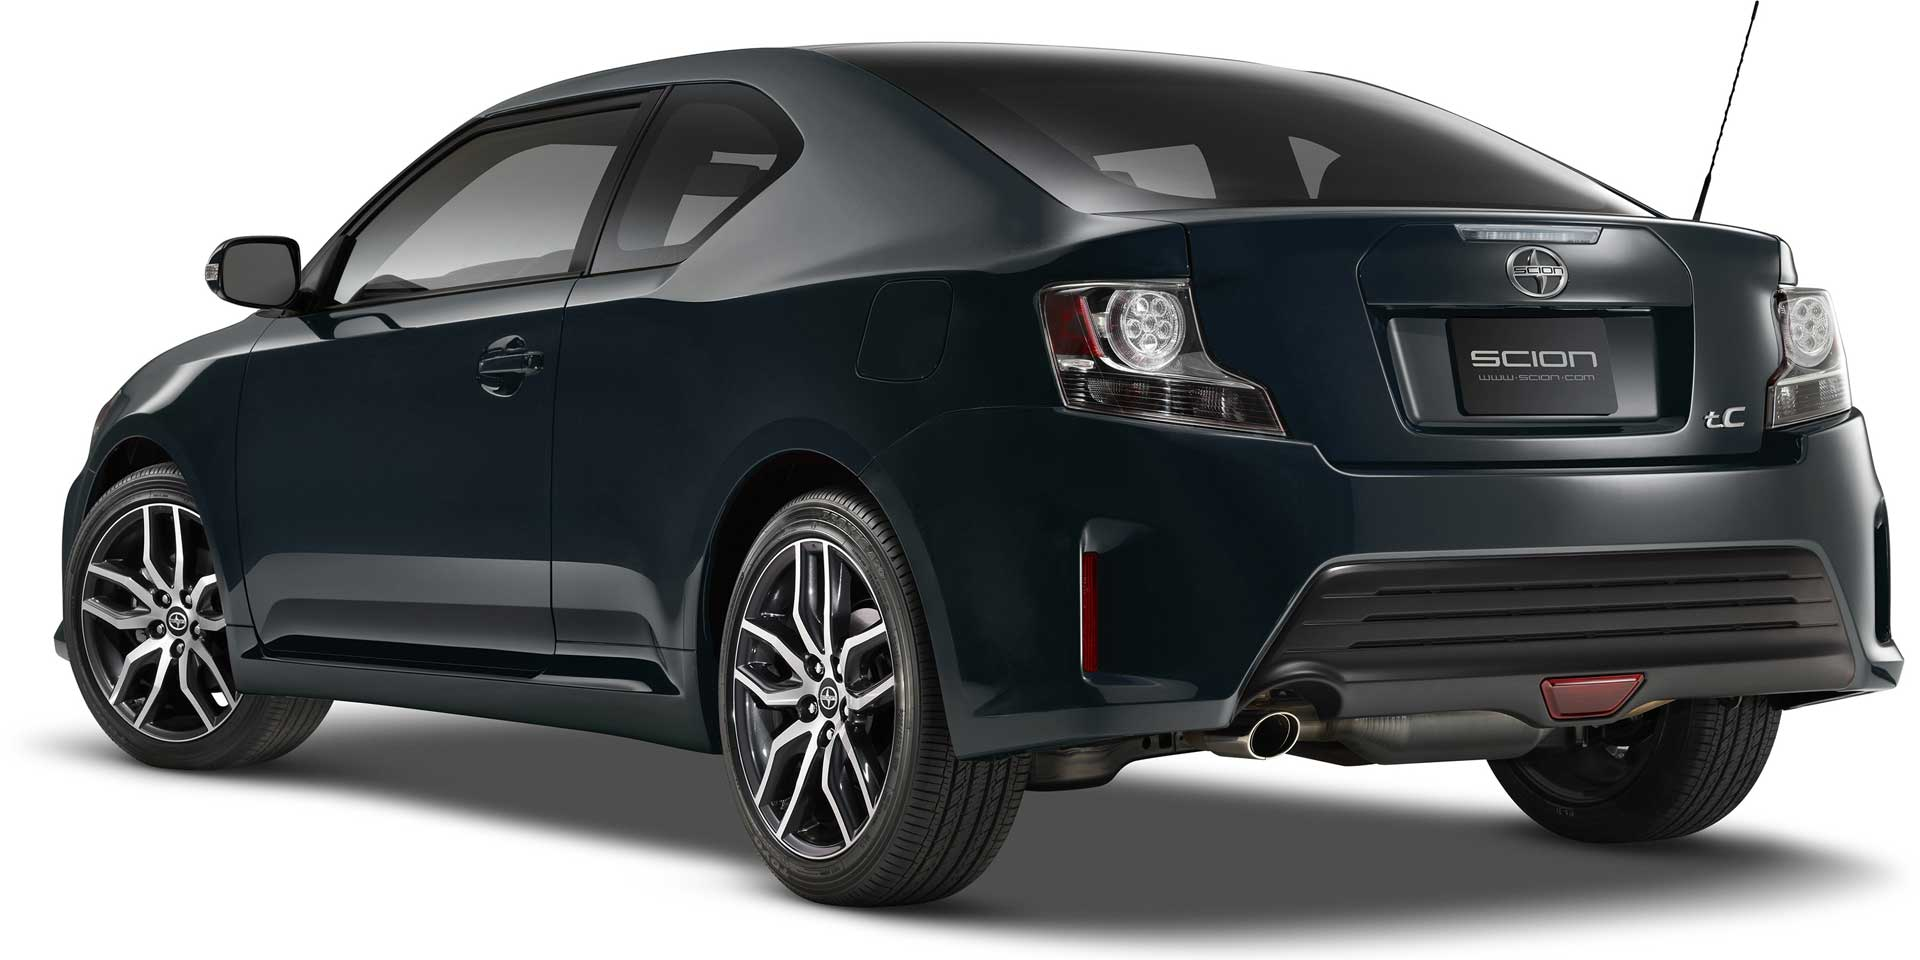 2016 Scion Tc For Fun And Versatility Check Out The Sporty Coupe At 108th Chicago Auto Show Feb 13 21